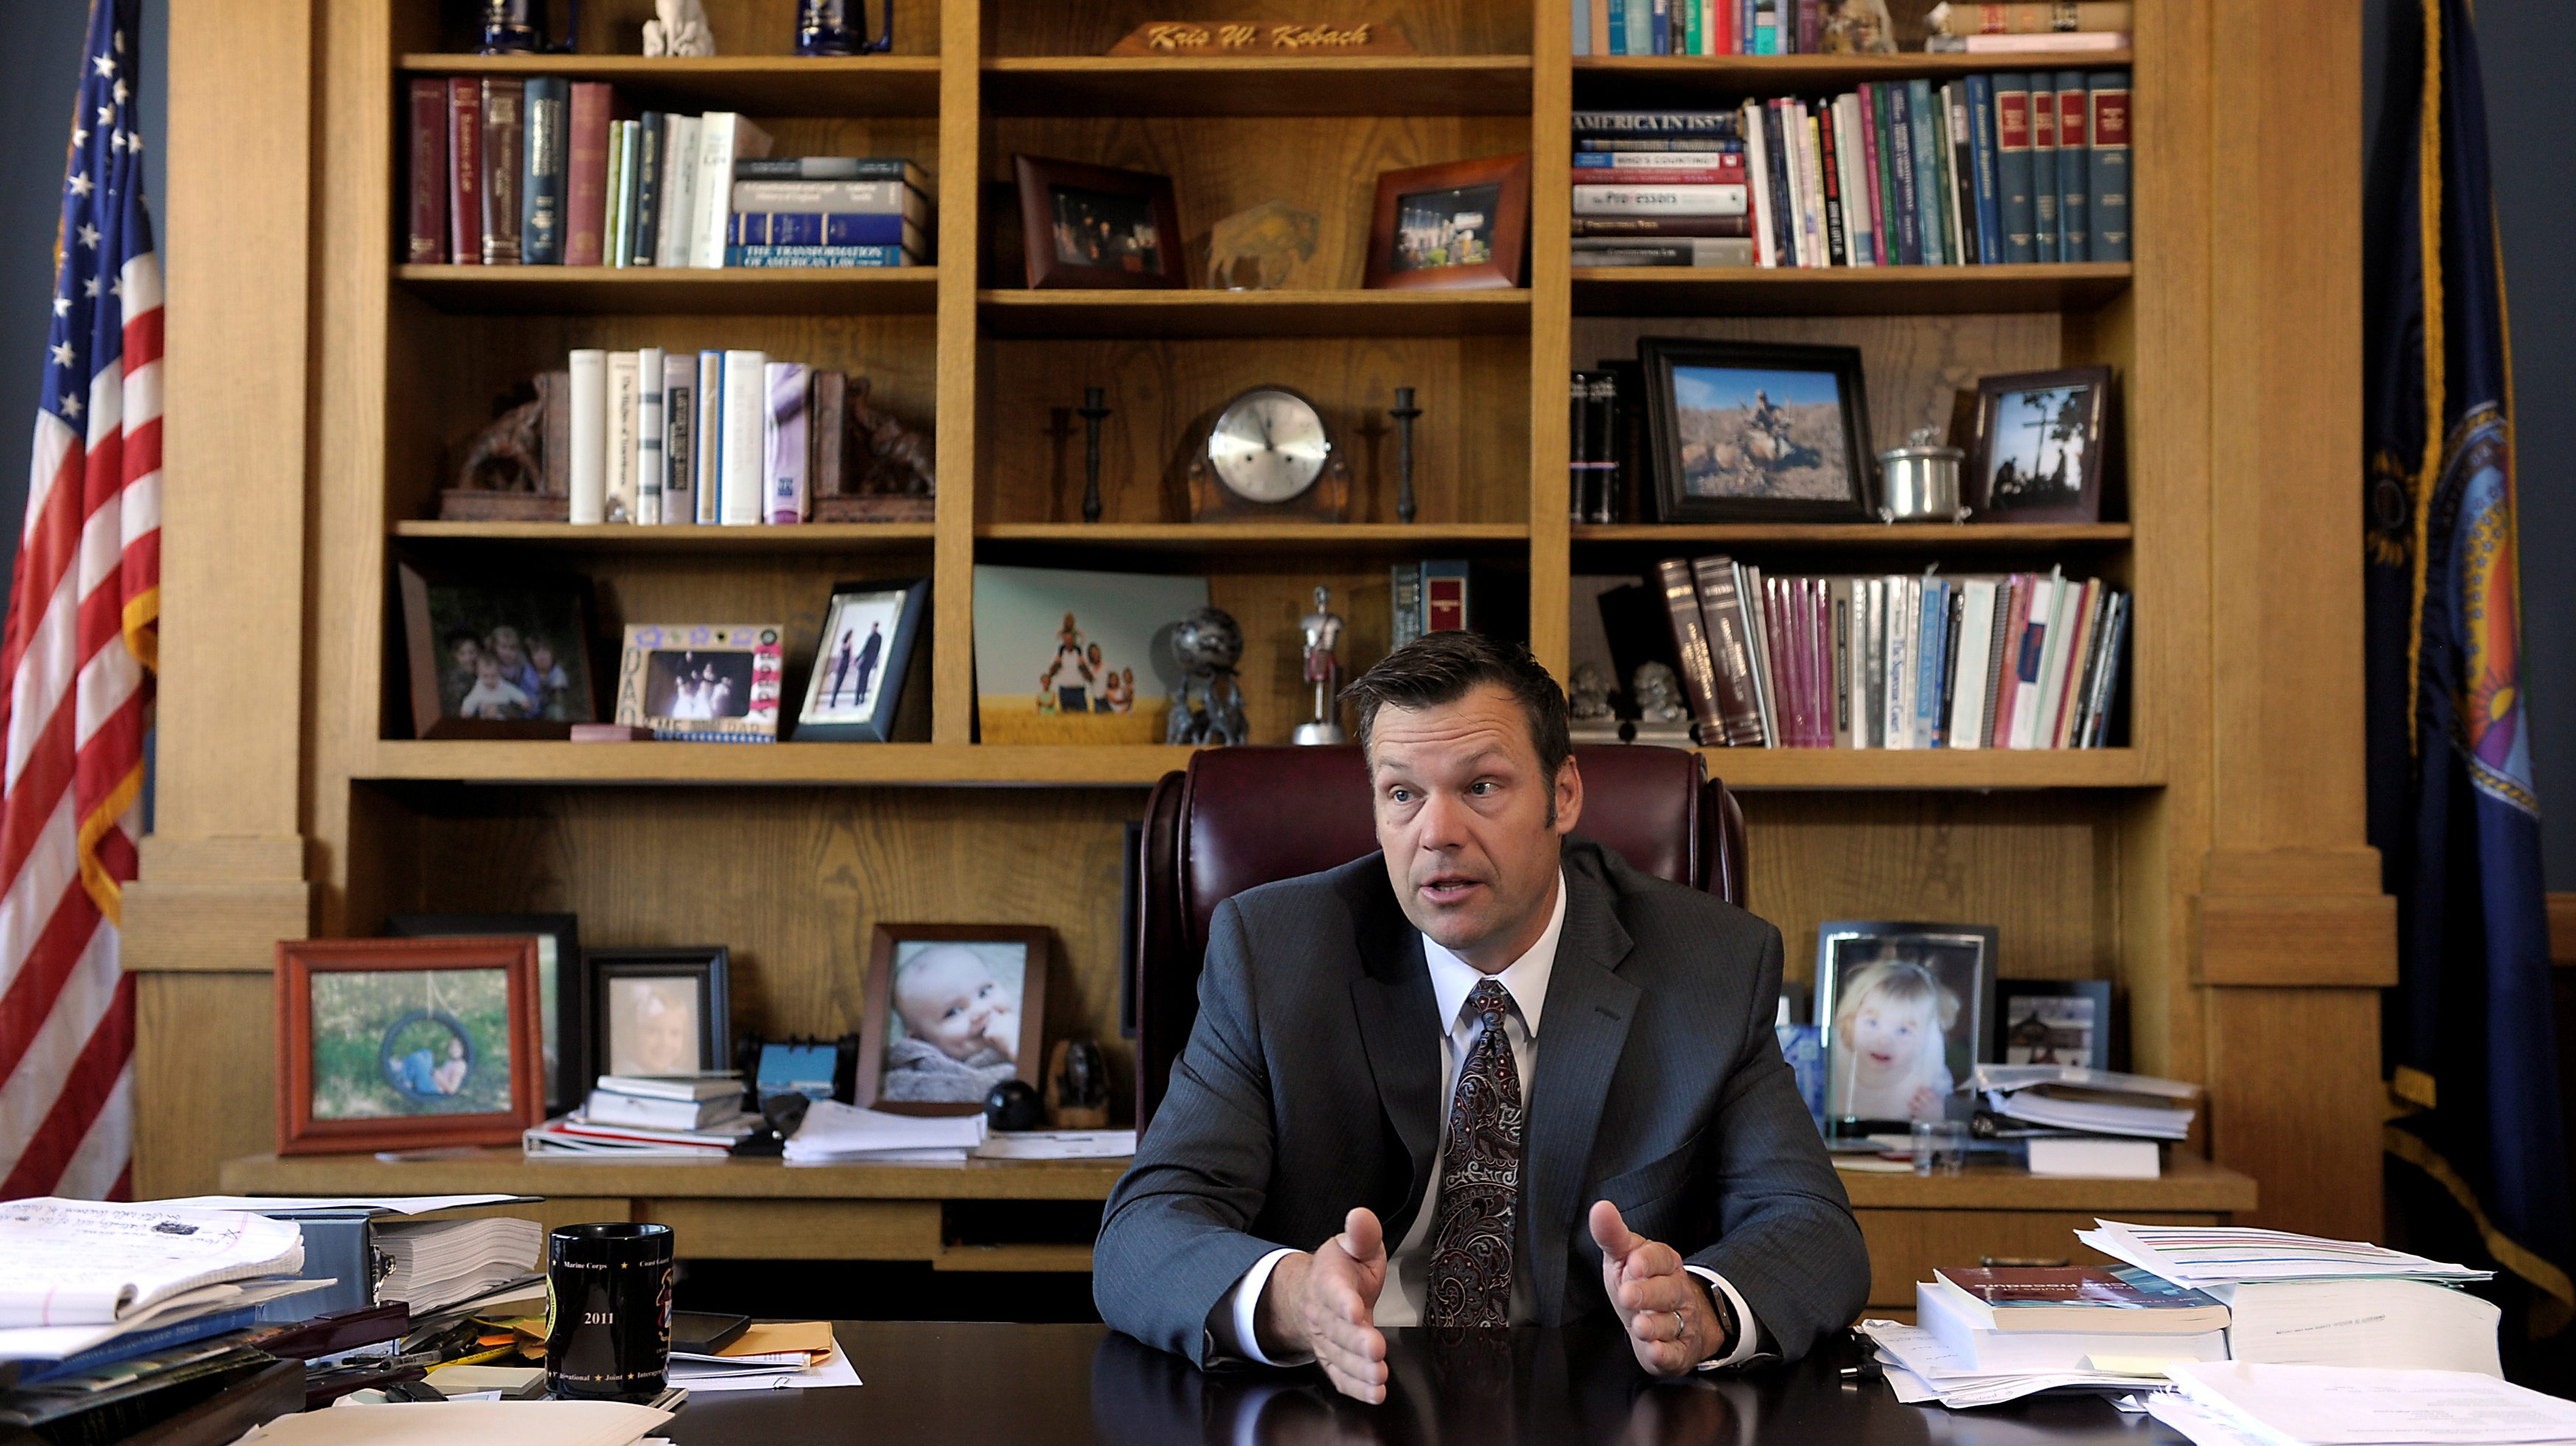 Kansas Secretary of State Kris Kobach talks about the Kansas voter ID law that he pushed to combat what he believes to be rampant voter fraud in the United States in his Topeka, Kansas, U.S., office May 12, 2016.